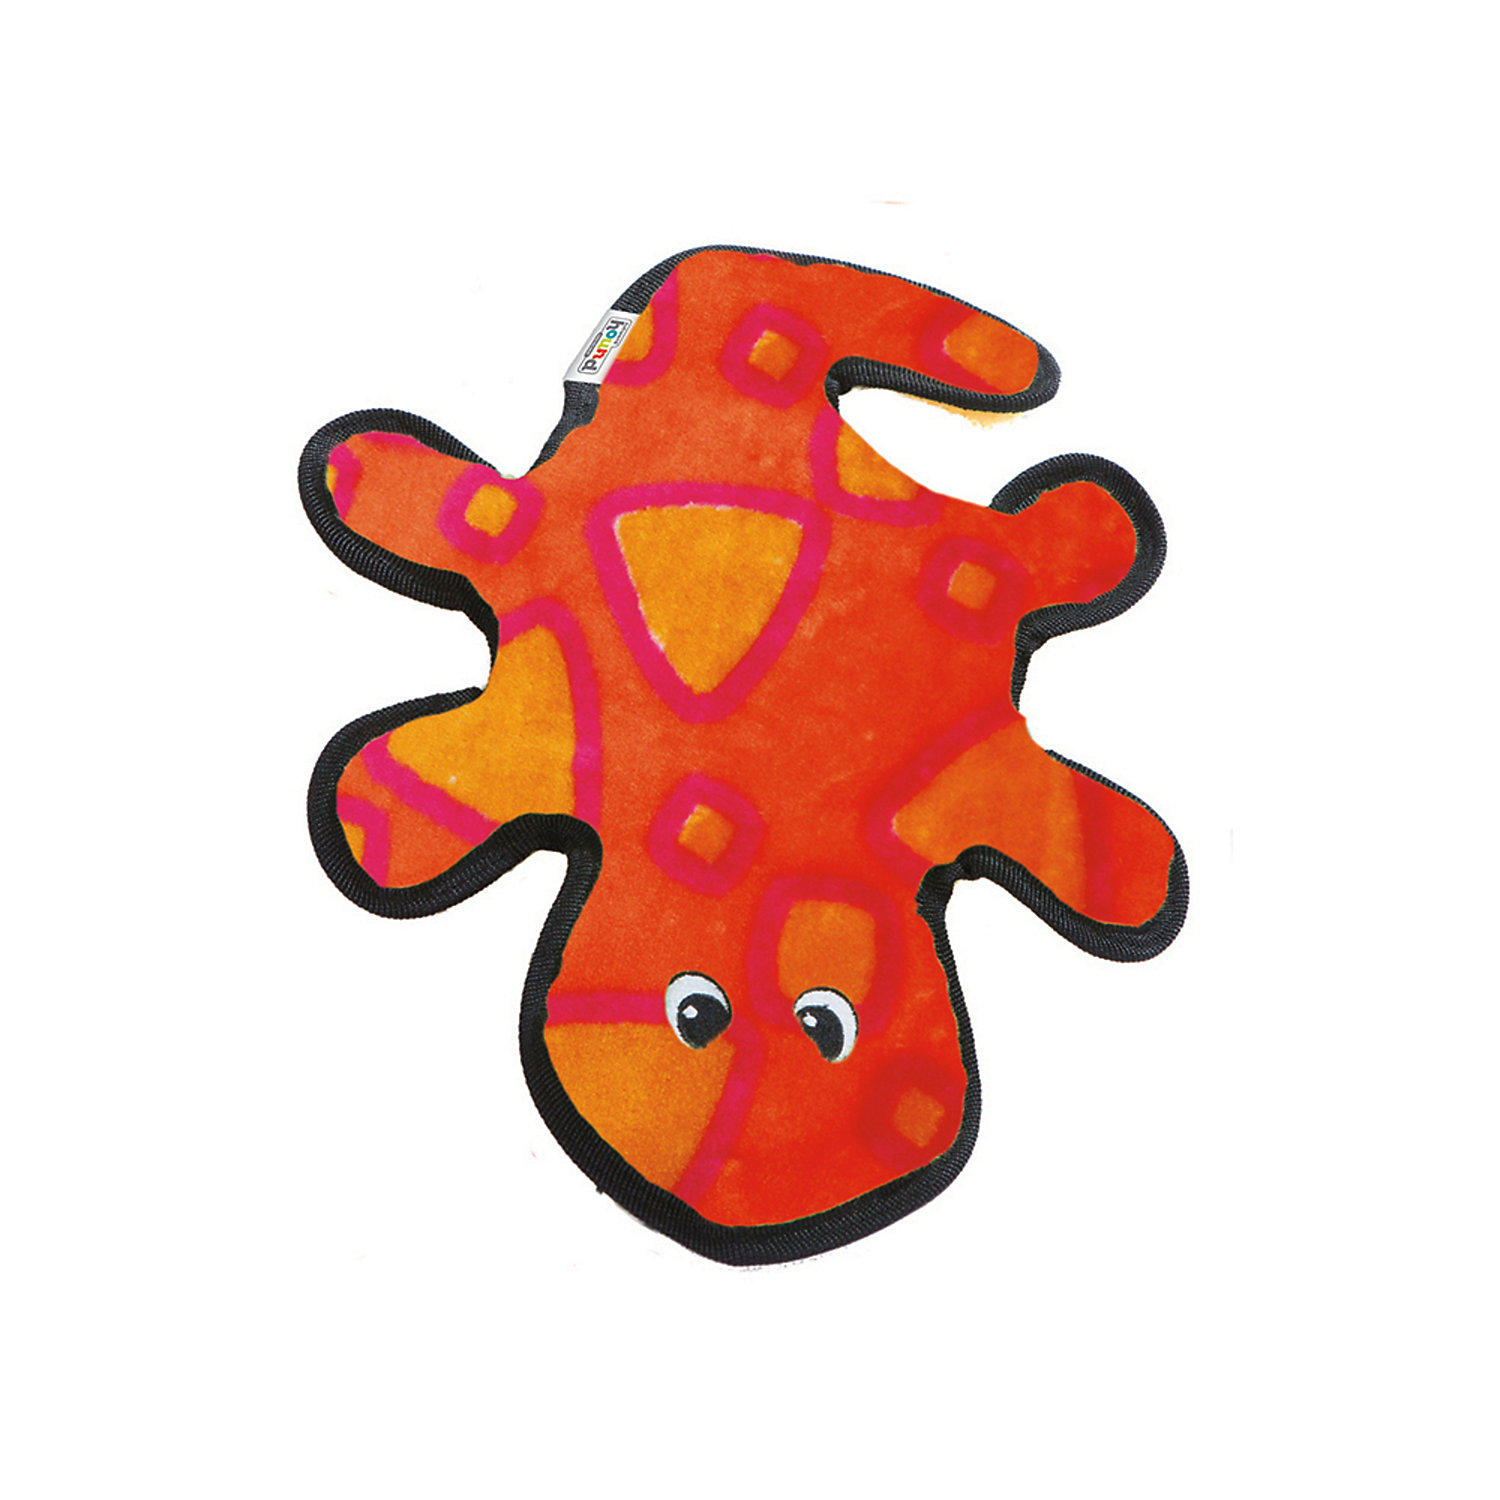 Outward Hound Invincible Red Orange Gecko Dog Toy 14 L X 9.5 W X 2 H Multi Color